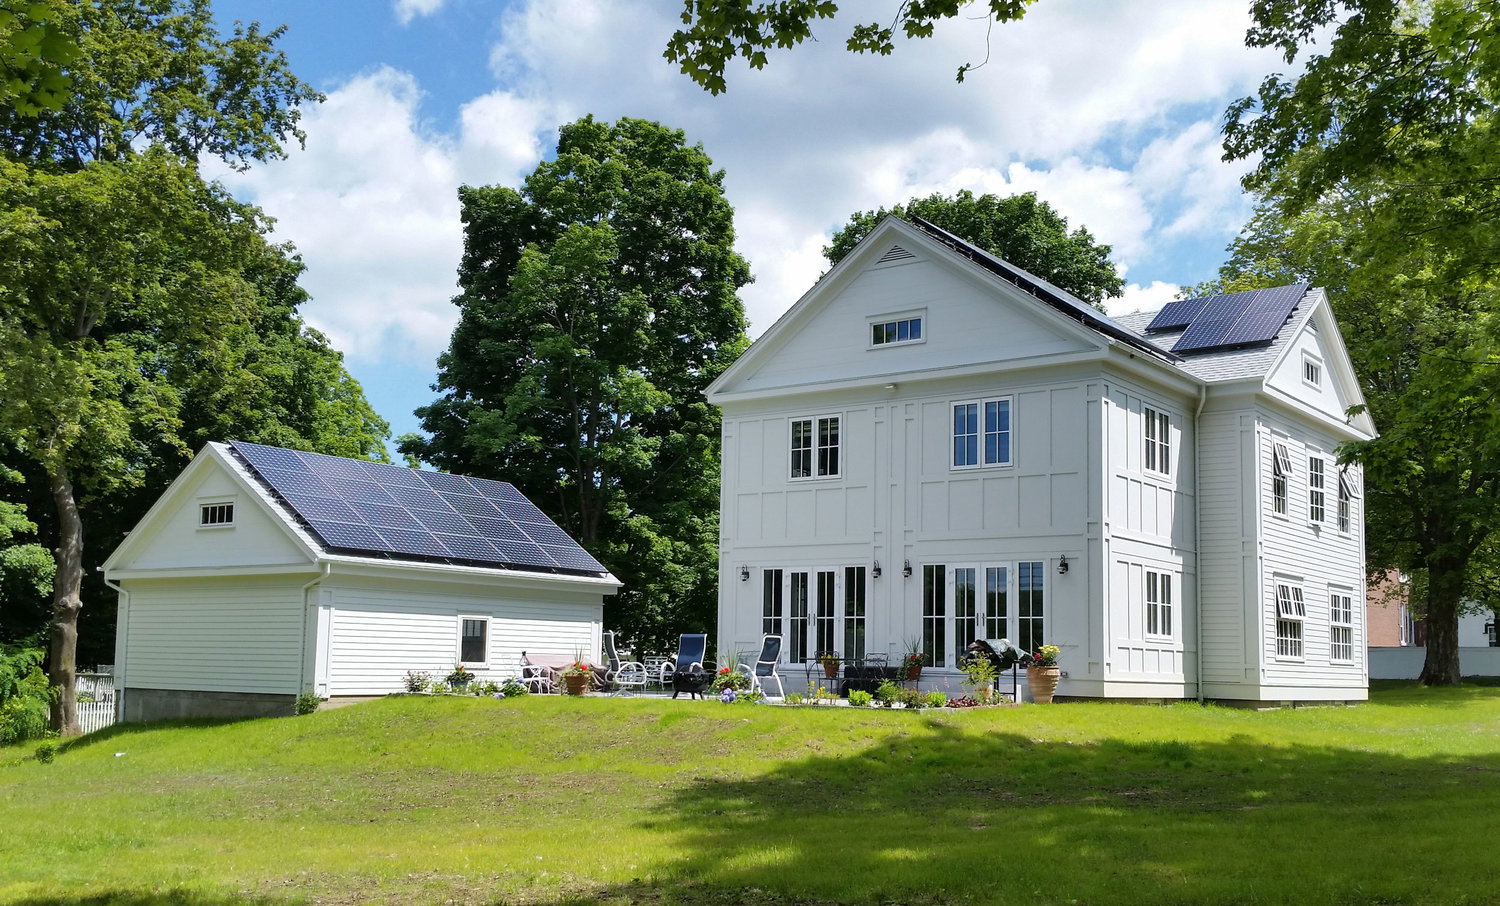 3 Ways To Estimate Construction Costs For New Homes And Remodels Average Cost Of Rewiring A 6 Bedroom House Passive Leed Platinum Taft School Faculty Housing